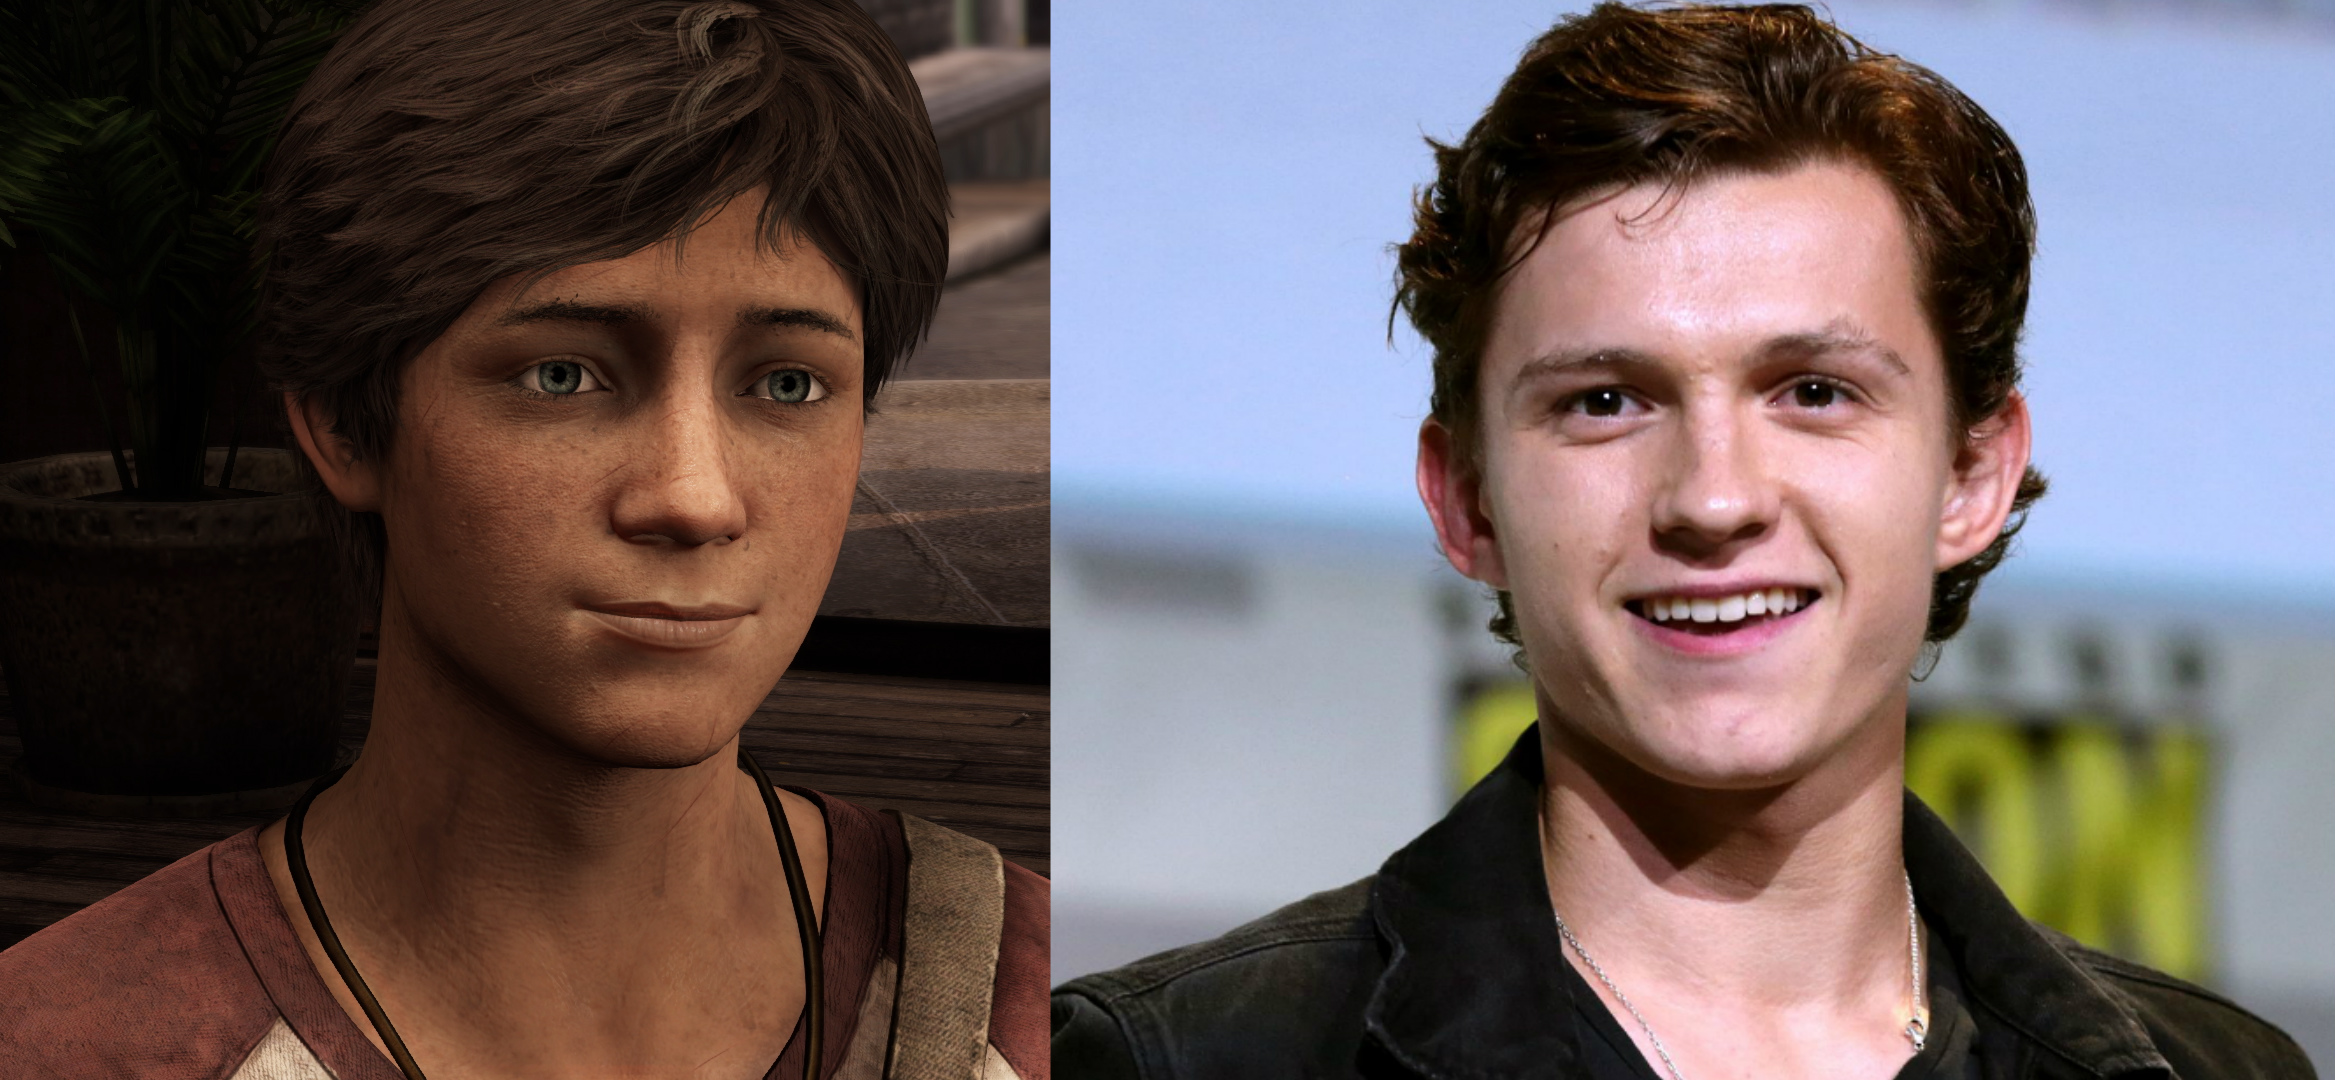 uncharted film focuses on